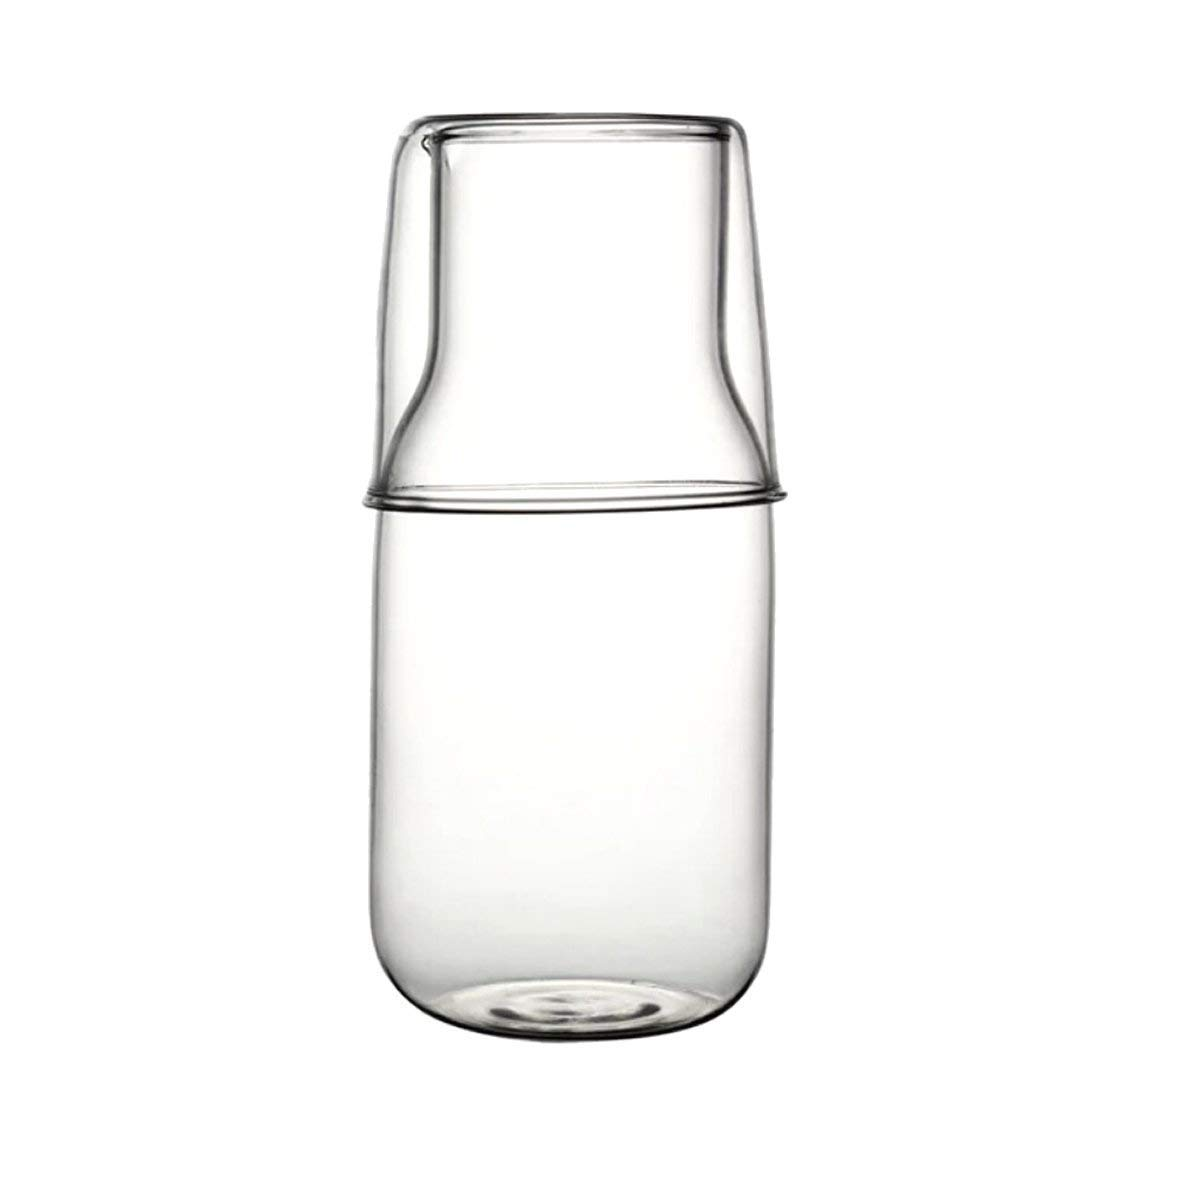 bouti1583 Glass Bedside Water Carafe Set with Tumbler